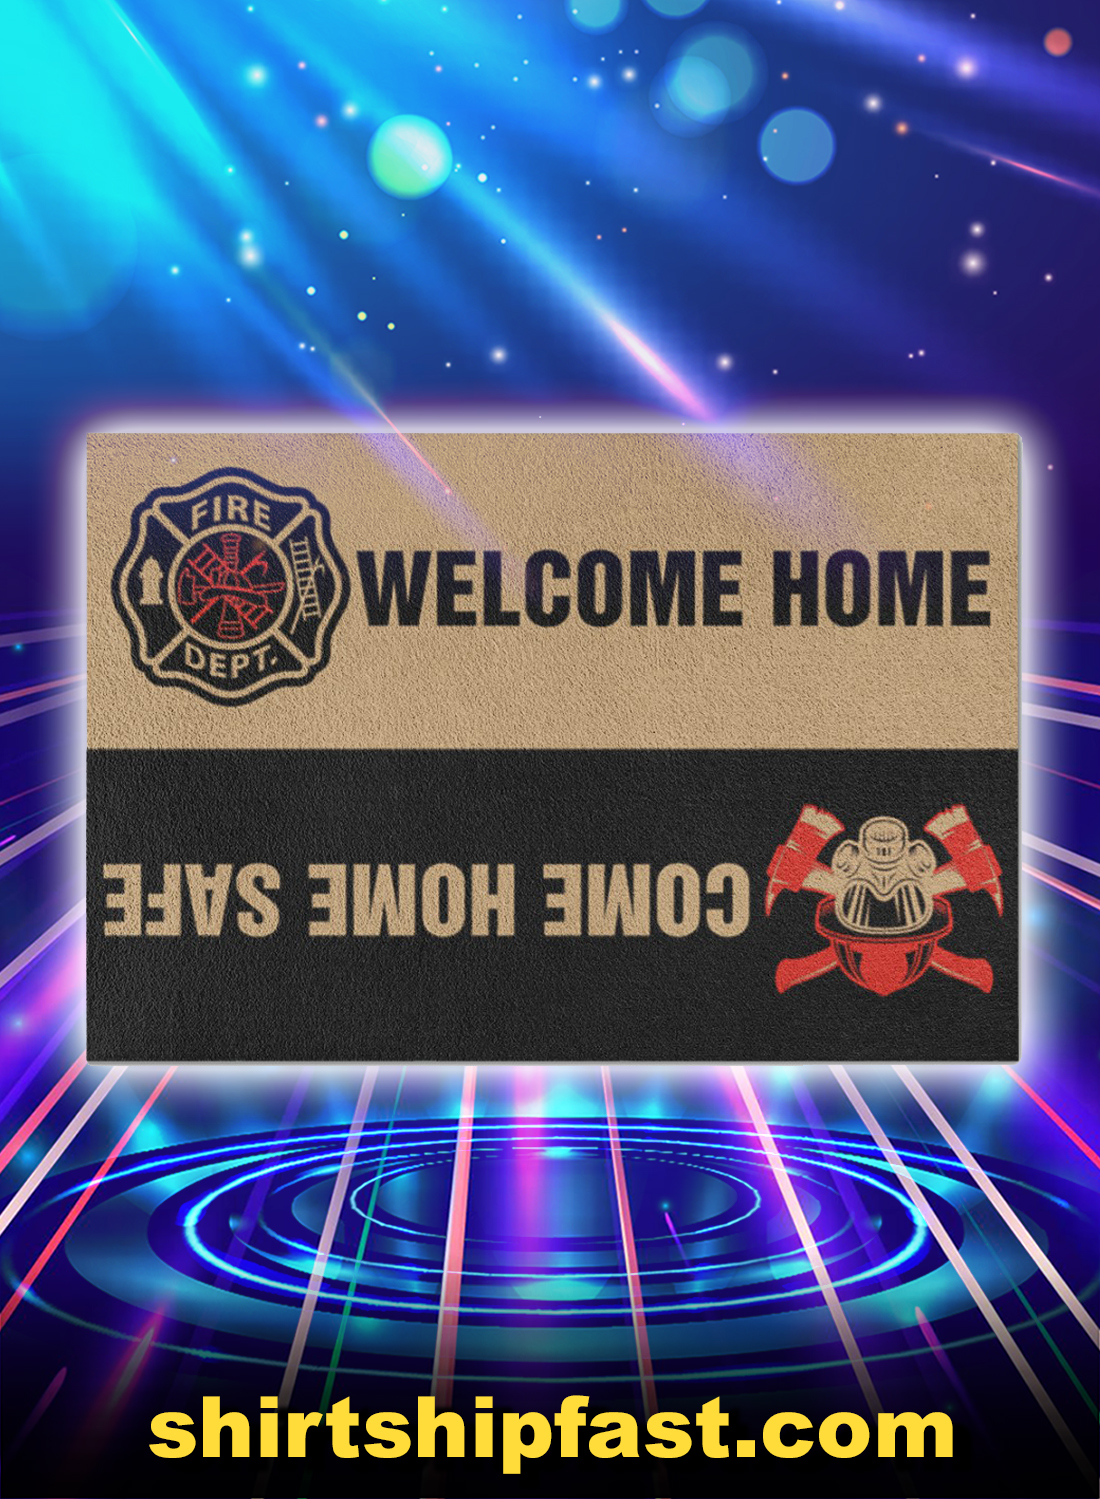 Firefighter welcome home come home safe doormat